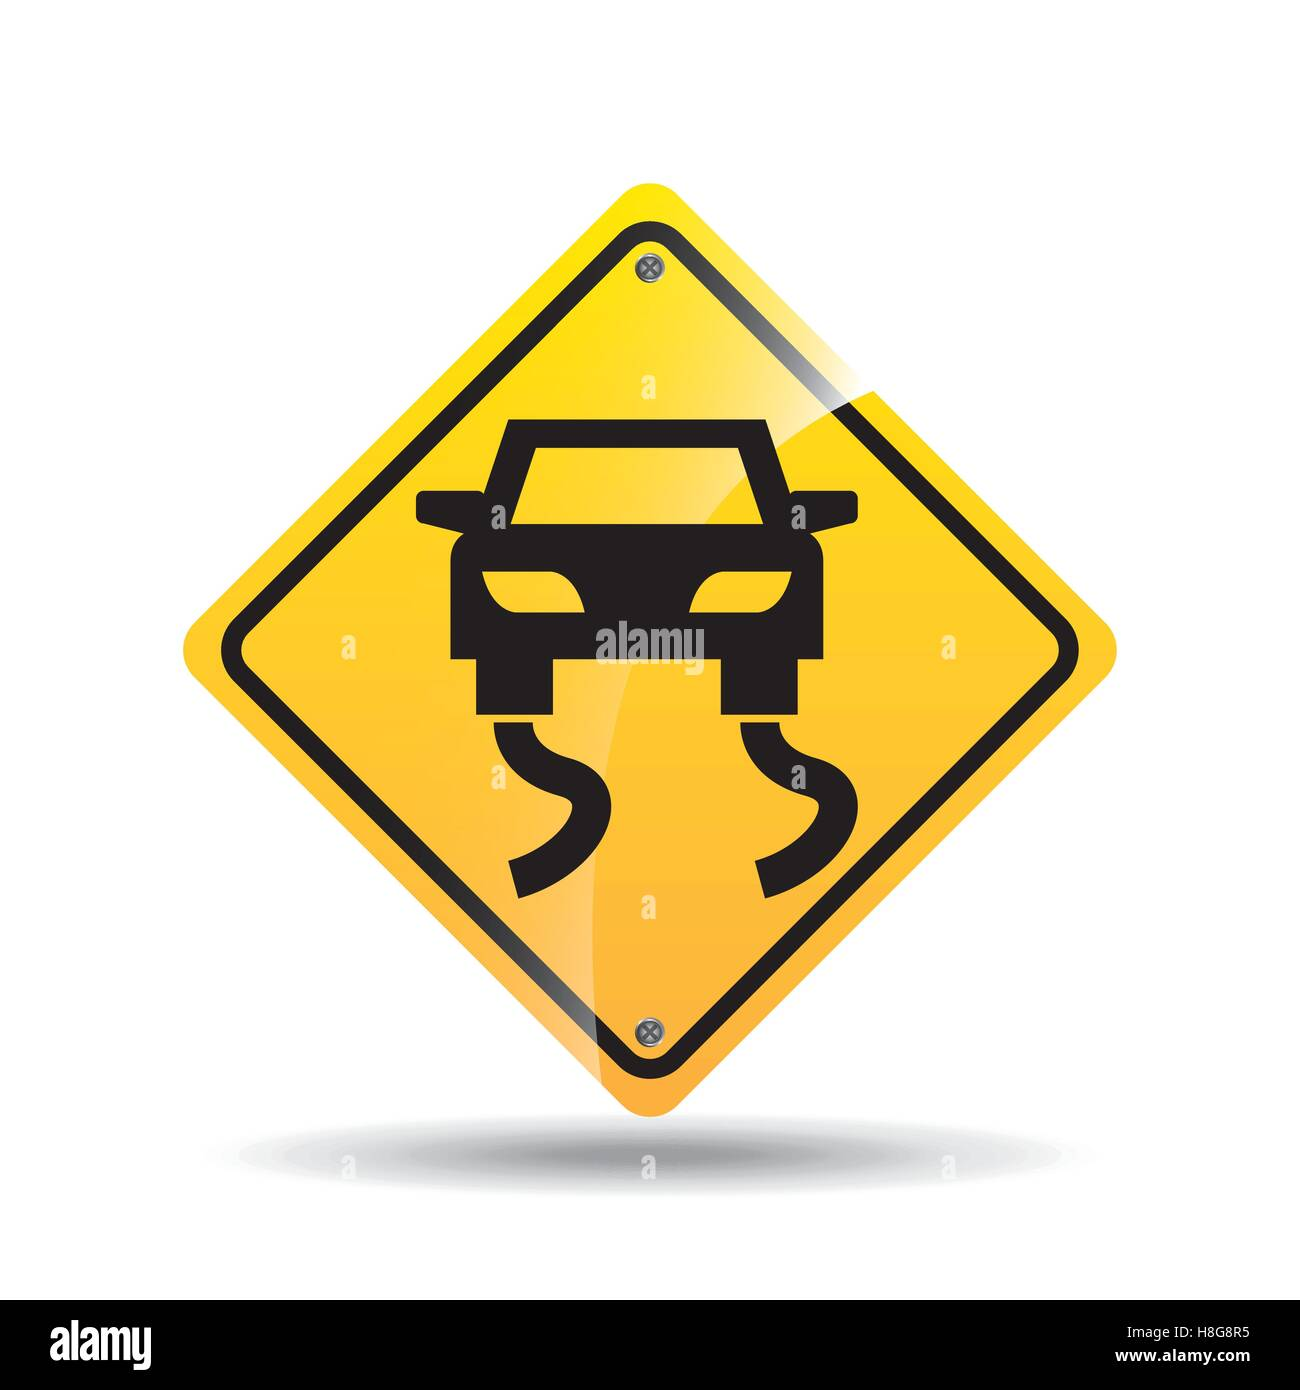 road sign slippery car icon vector illustration eps 10 - Stock Image